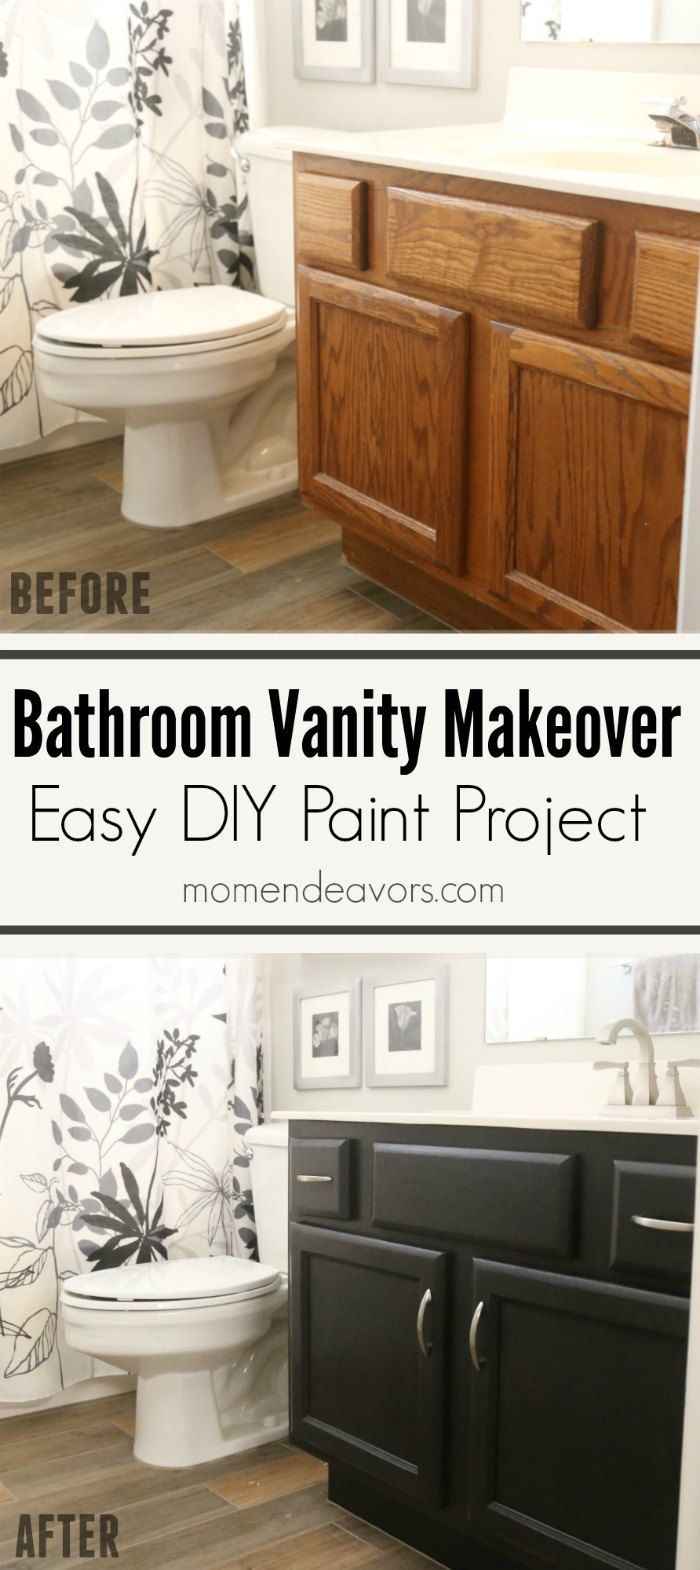 how to paint bathroom cabinets ideas pin by endeavors on diy home decor 17179